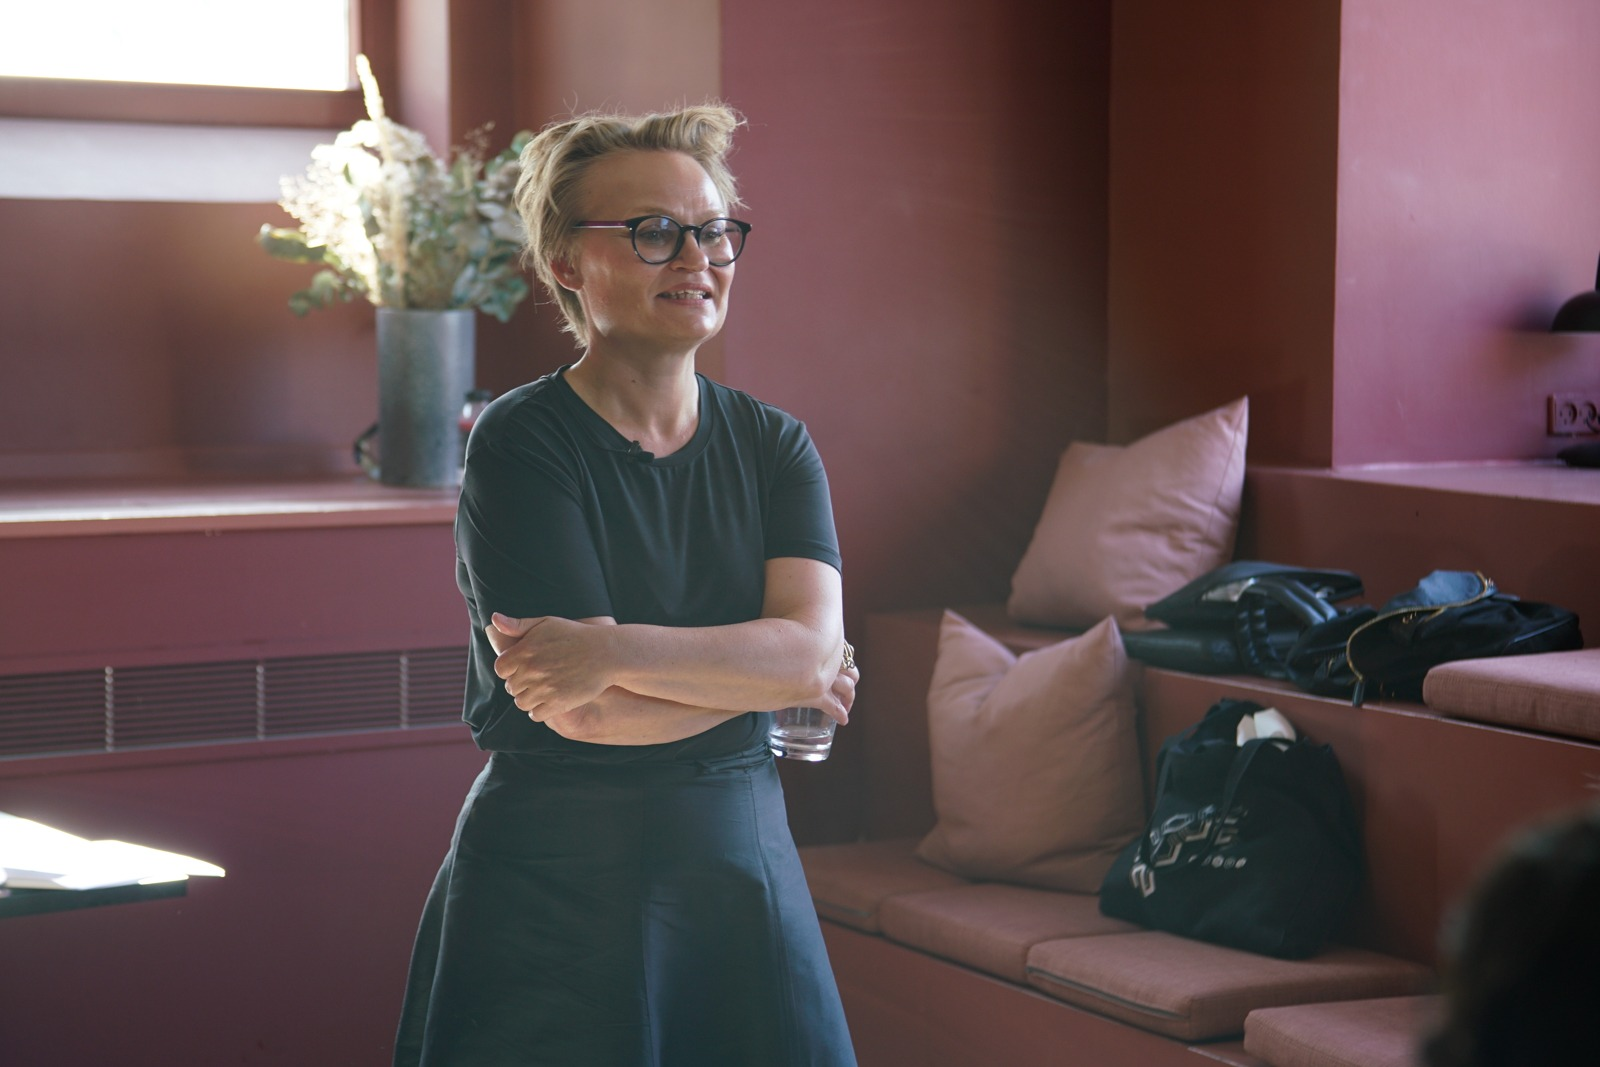 Event photography: Mette Willert at Creative Mornings Cph - shot with Lomography Neptune